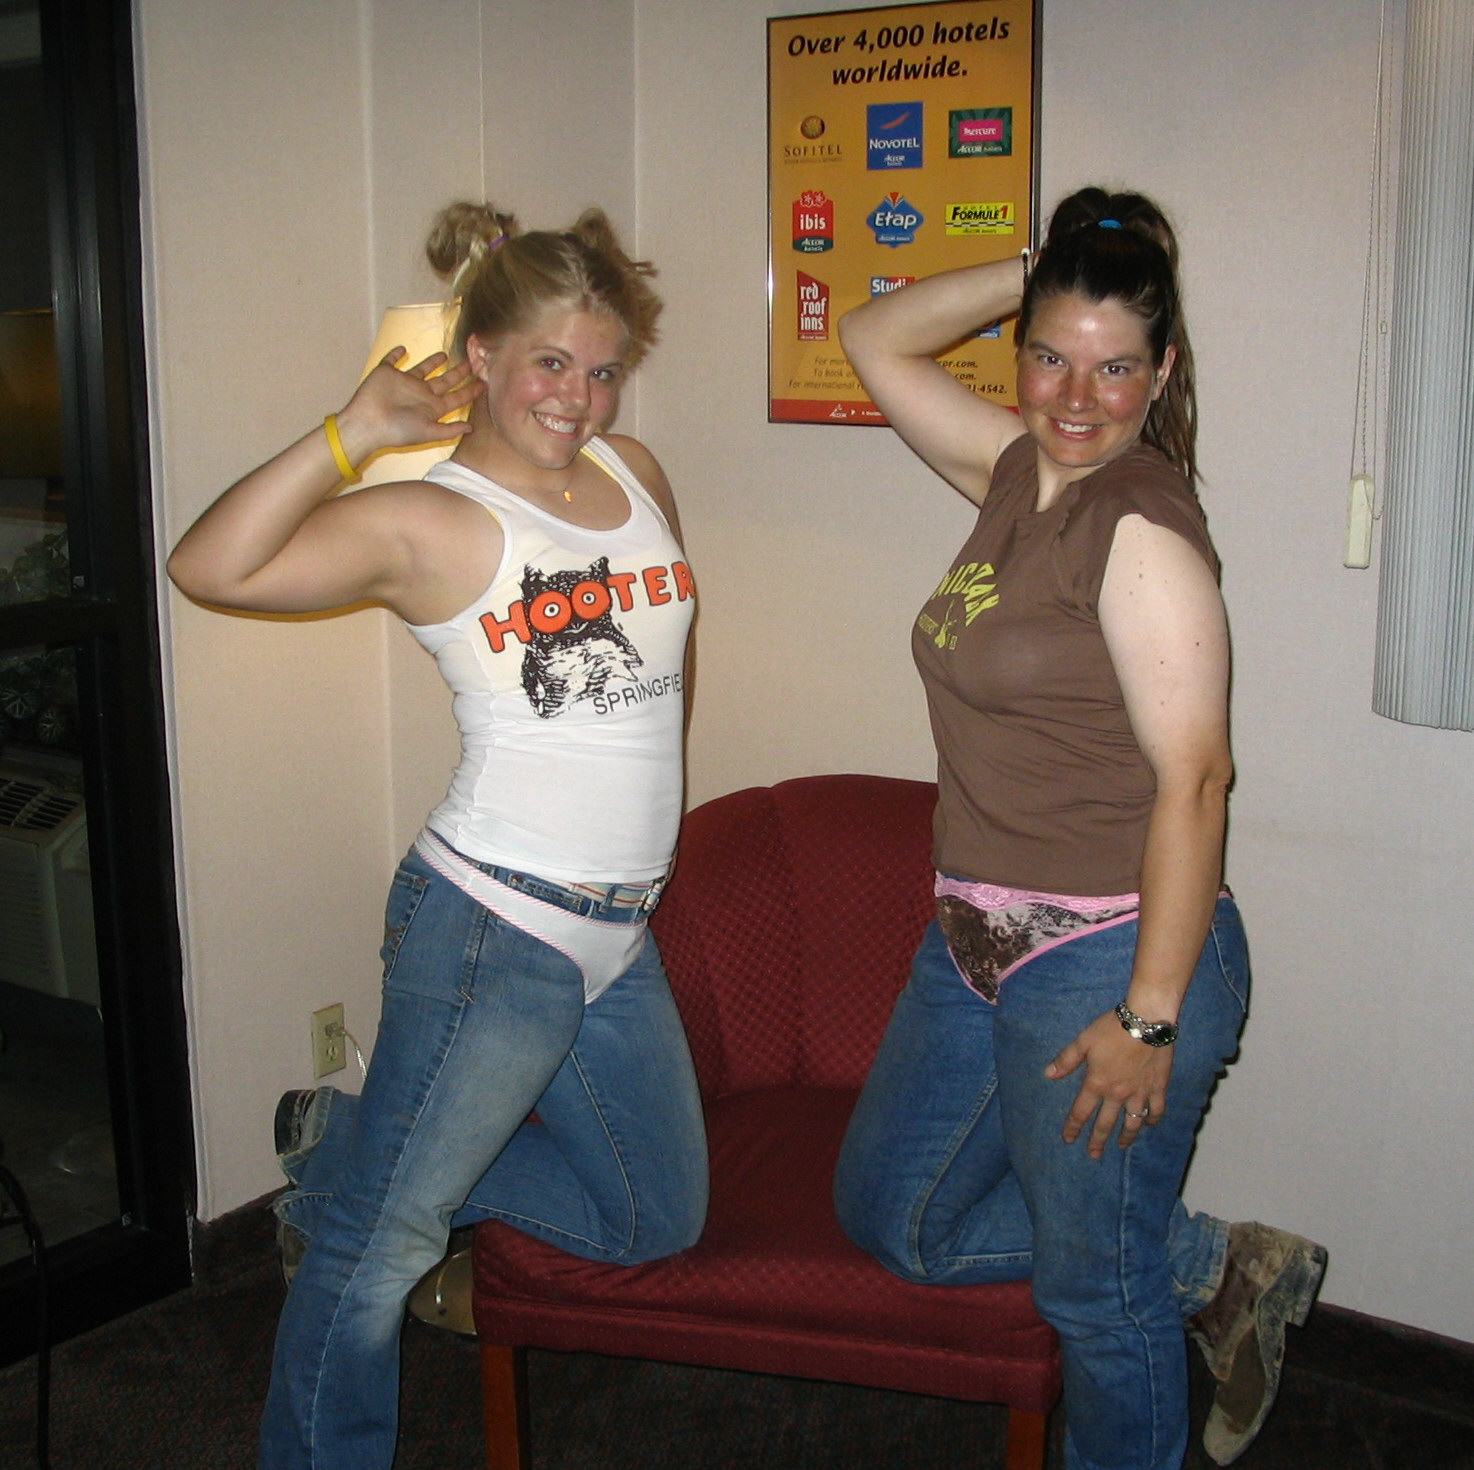 Ellen and Rachel are weirdos in the hotel lobby.  Photo credit: Mr. Hotel Rent-A-Cop